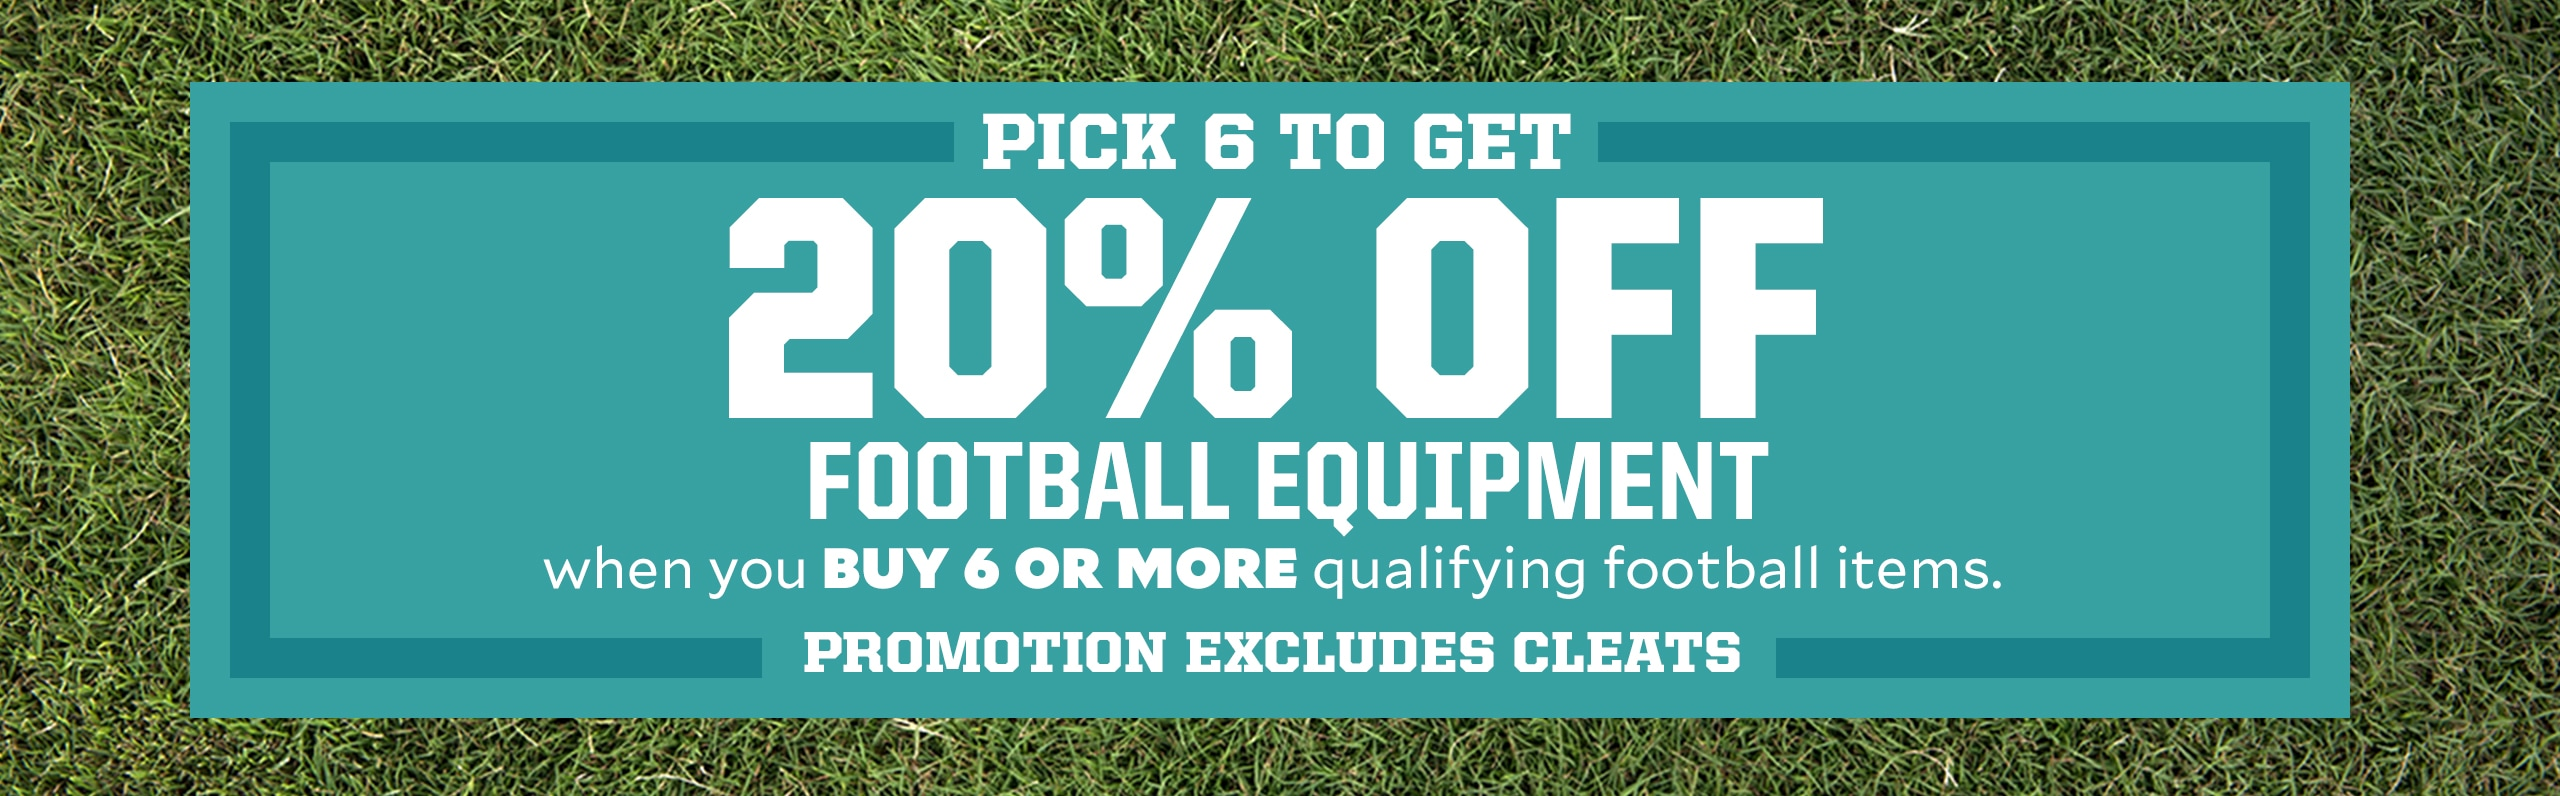 Pick 6 To Get 20% Off Football Eqiupment and Apparel